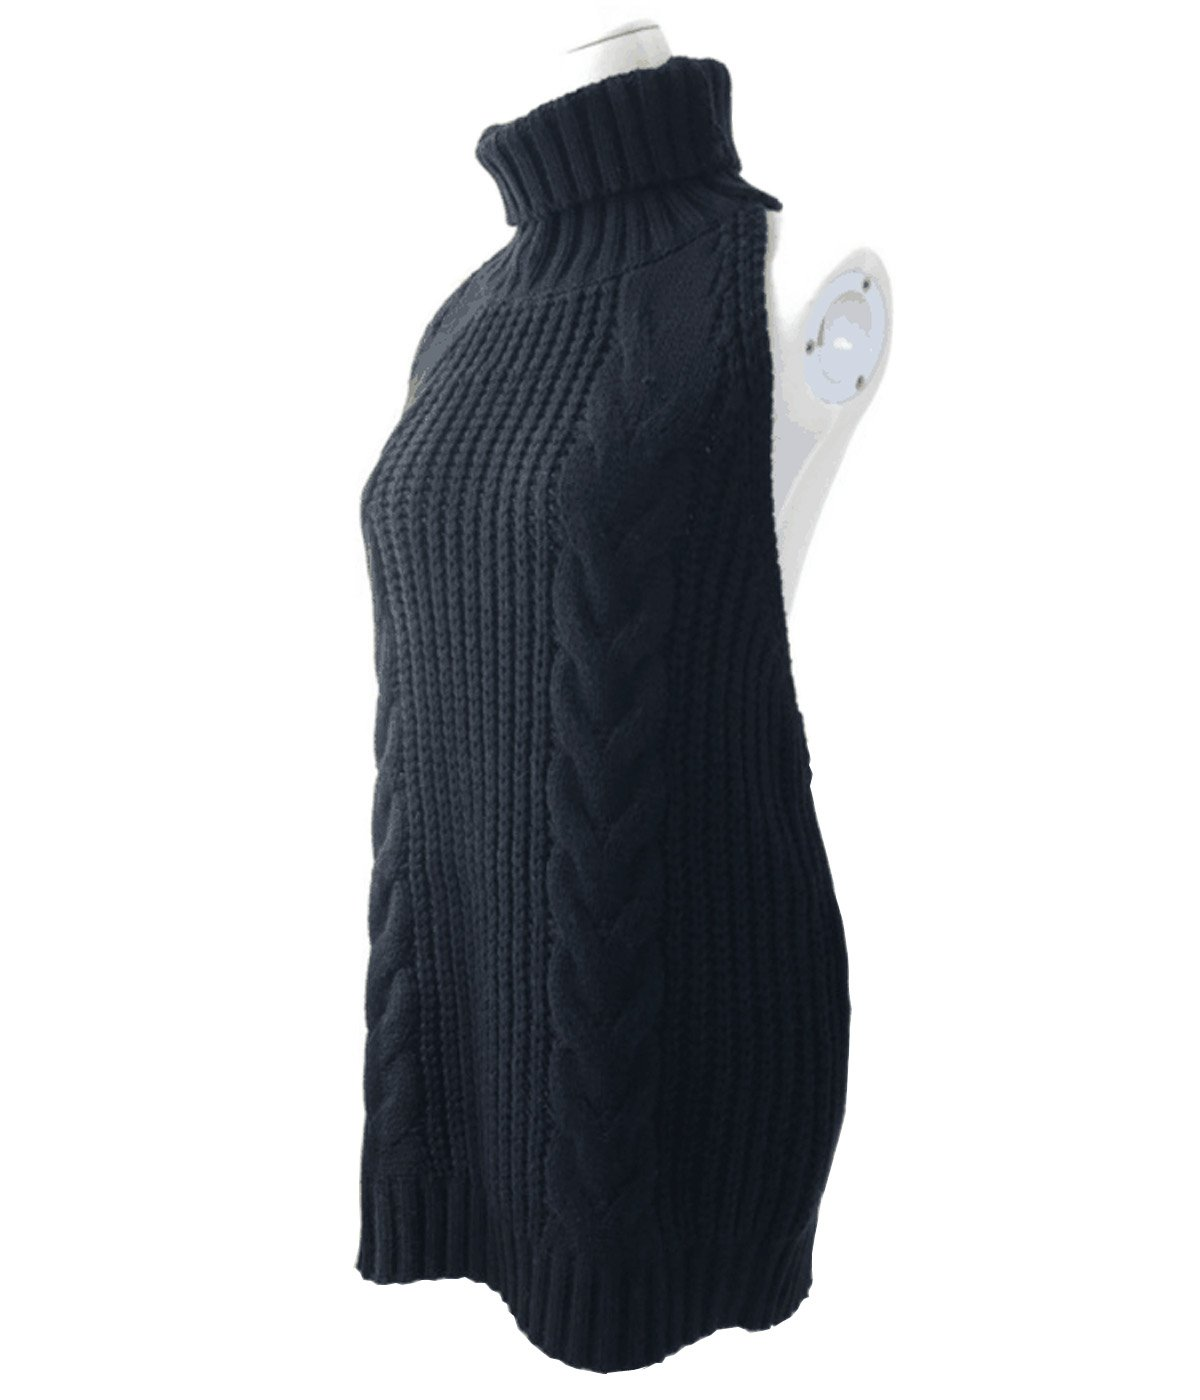 Ru Sweet Women's Sleeveless Ribbed Turtleneck Sweater Backless Casual Knit Tank Top Vest